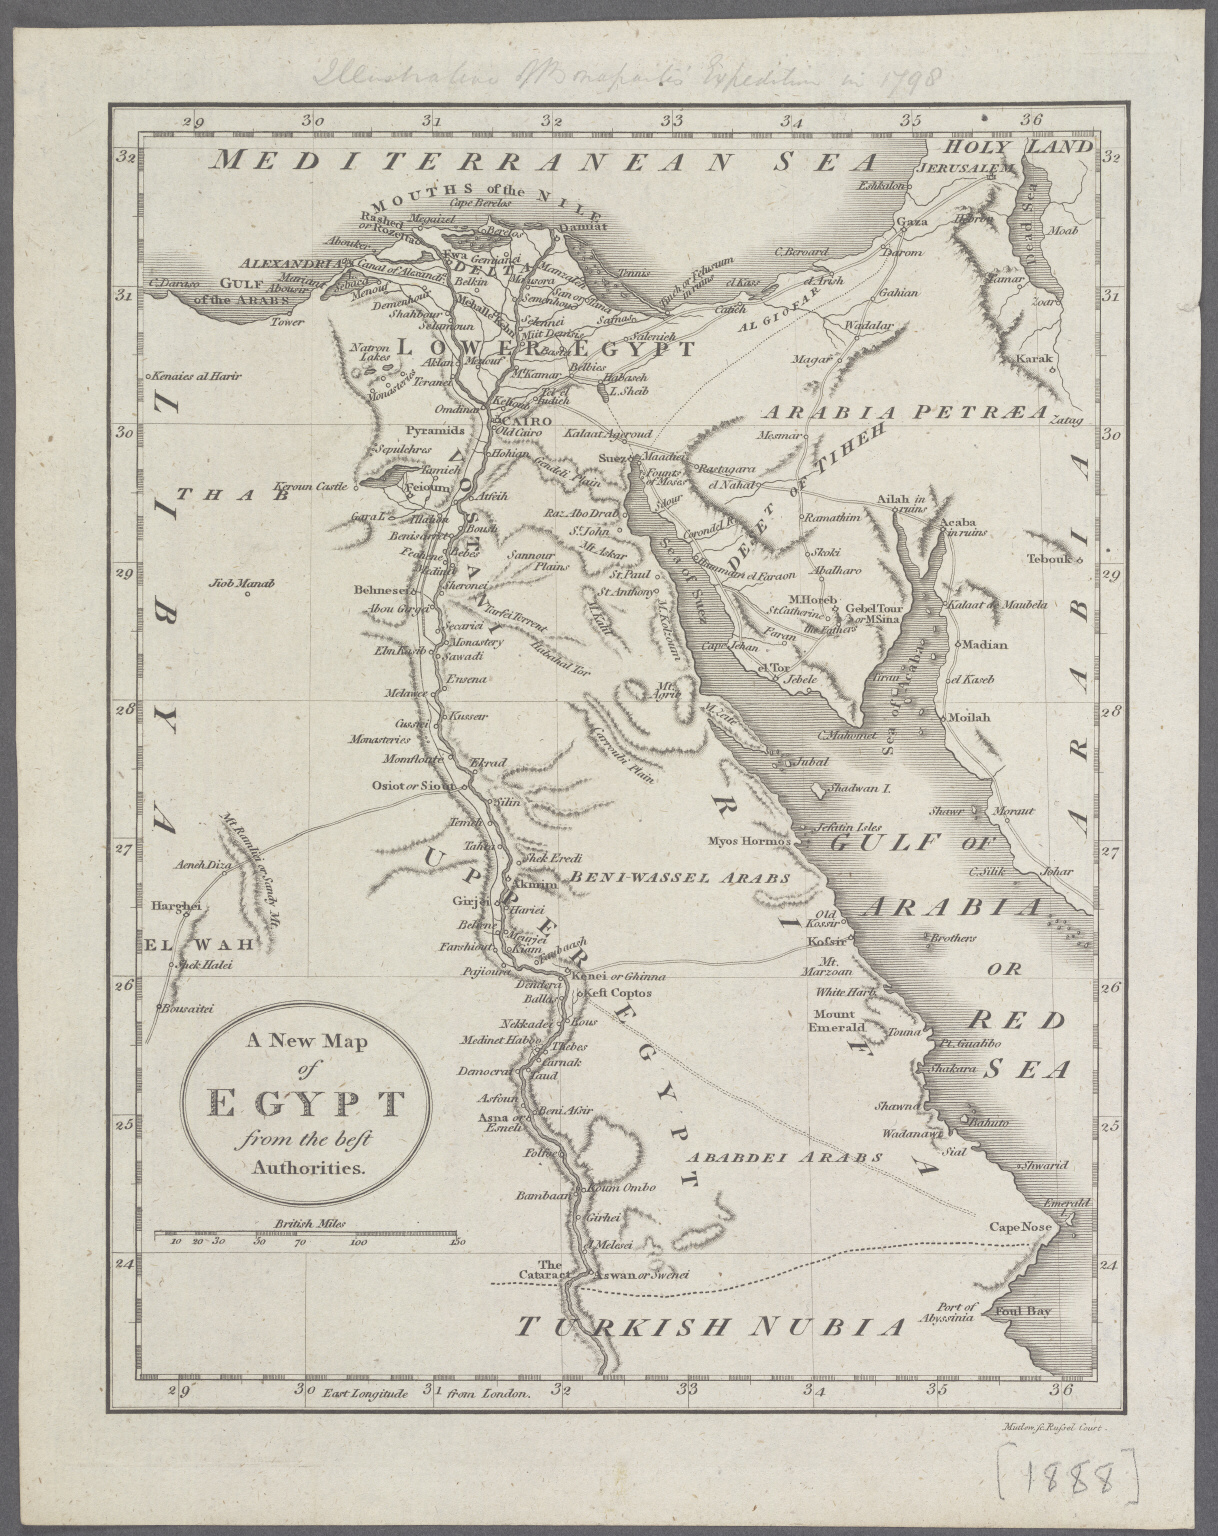 A New Map of Egypt from the best Authorities.